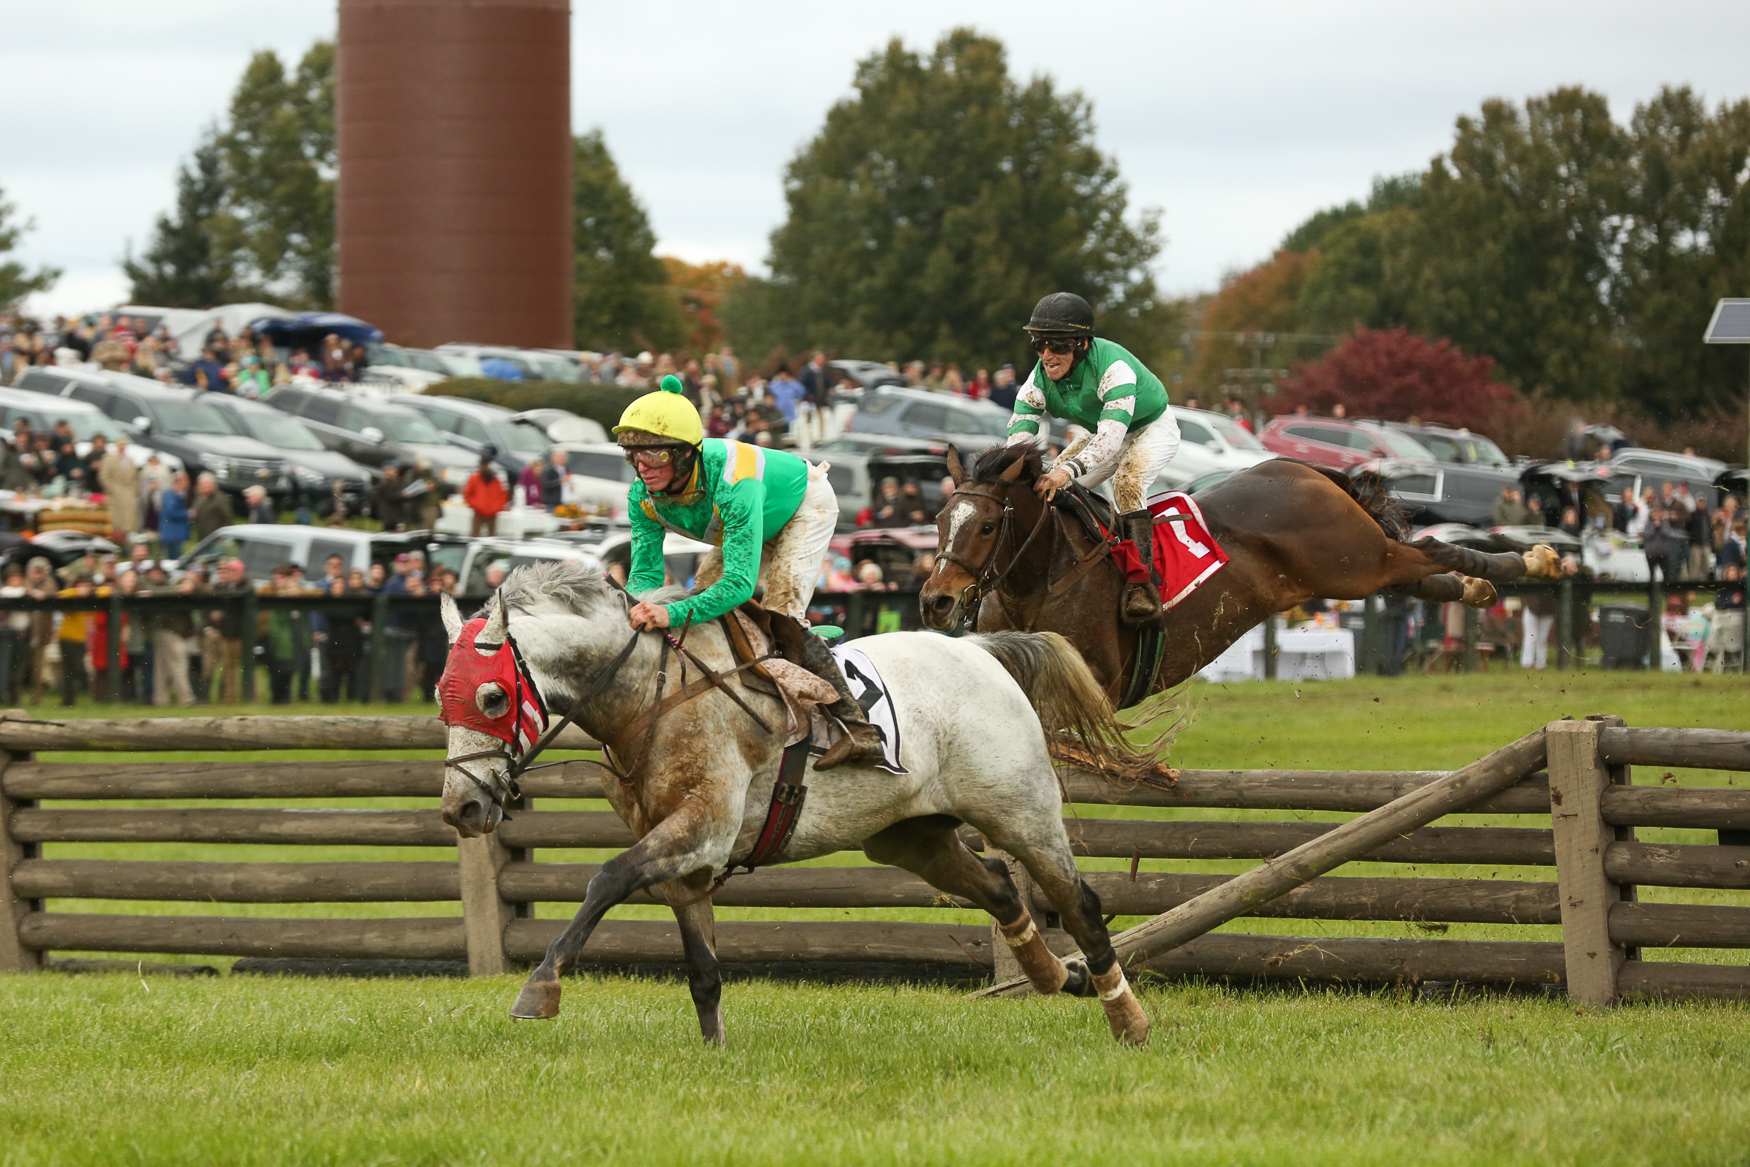 The crowds at the 93rd annual Virginia Gold Cup were a little thin as the rain poured, but horses charged down the track.The weather cleared through the day and the fans that showed up were treated to tight races, a hat competition and tailgating in The Plains, Virginia. (Amanda Andrade-Rhoades/DC Refined)